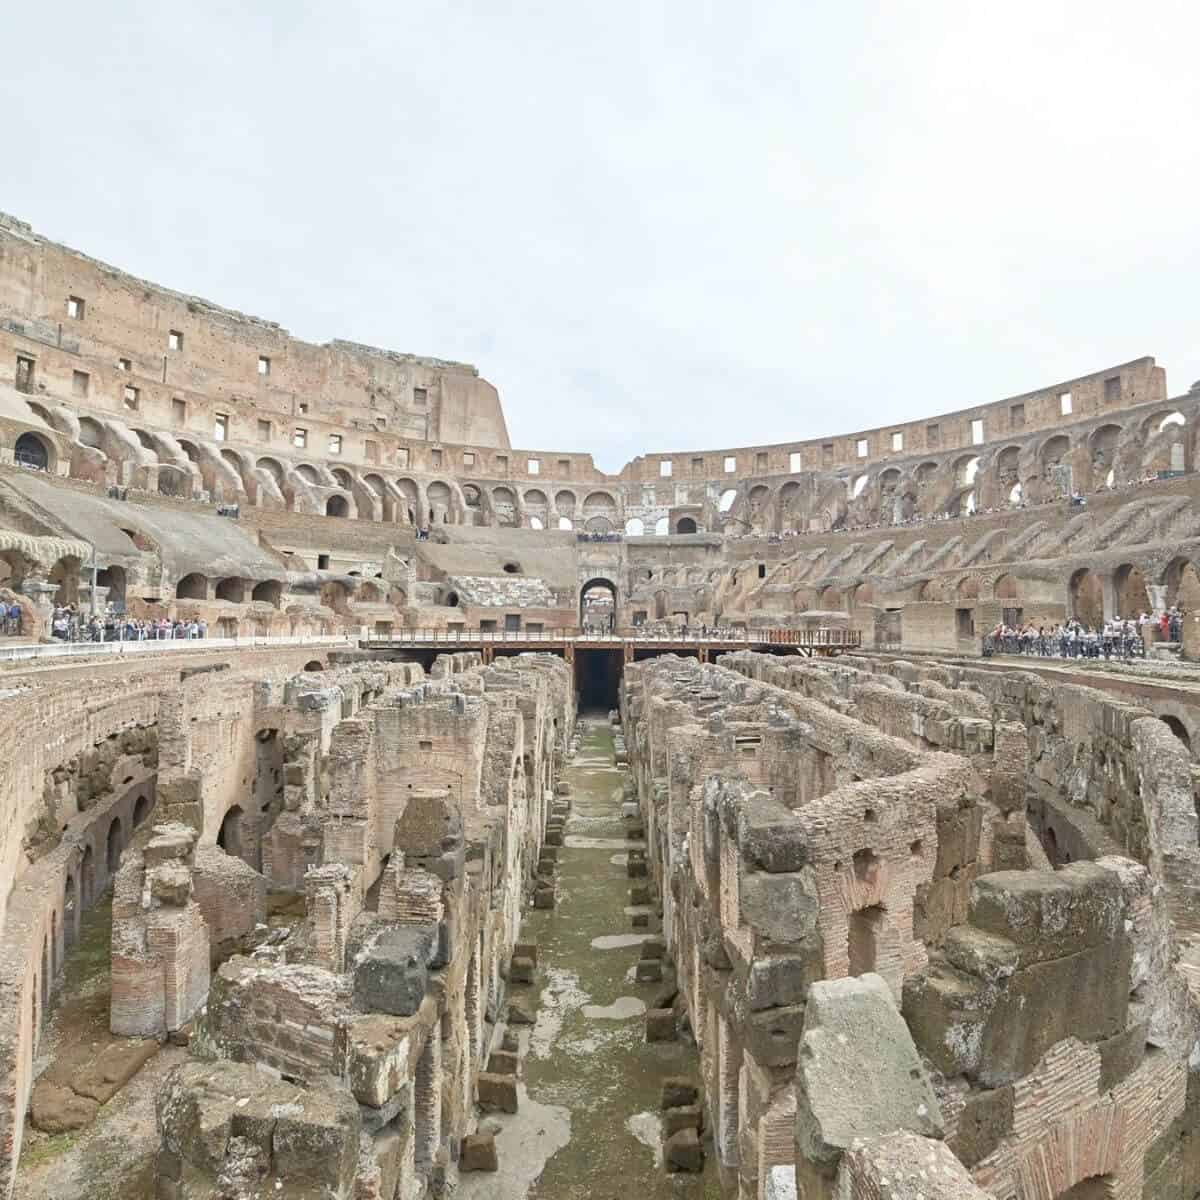 Inside the Colosseum in Rome.